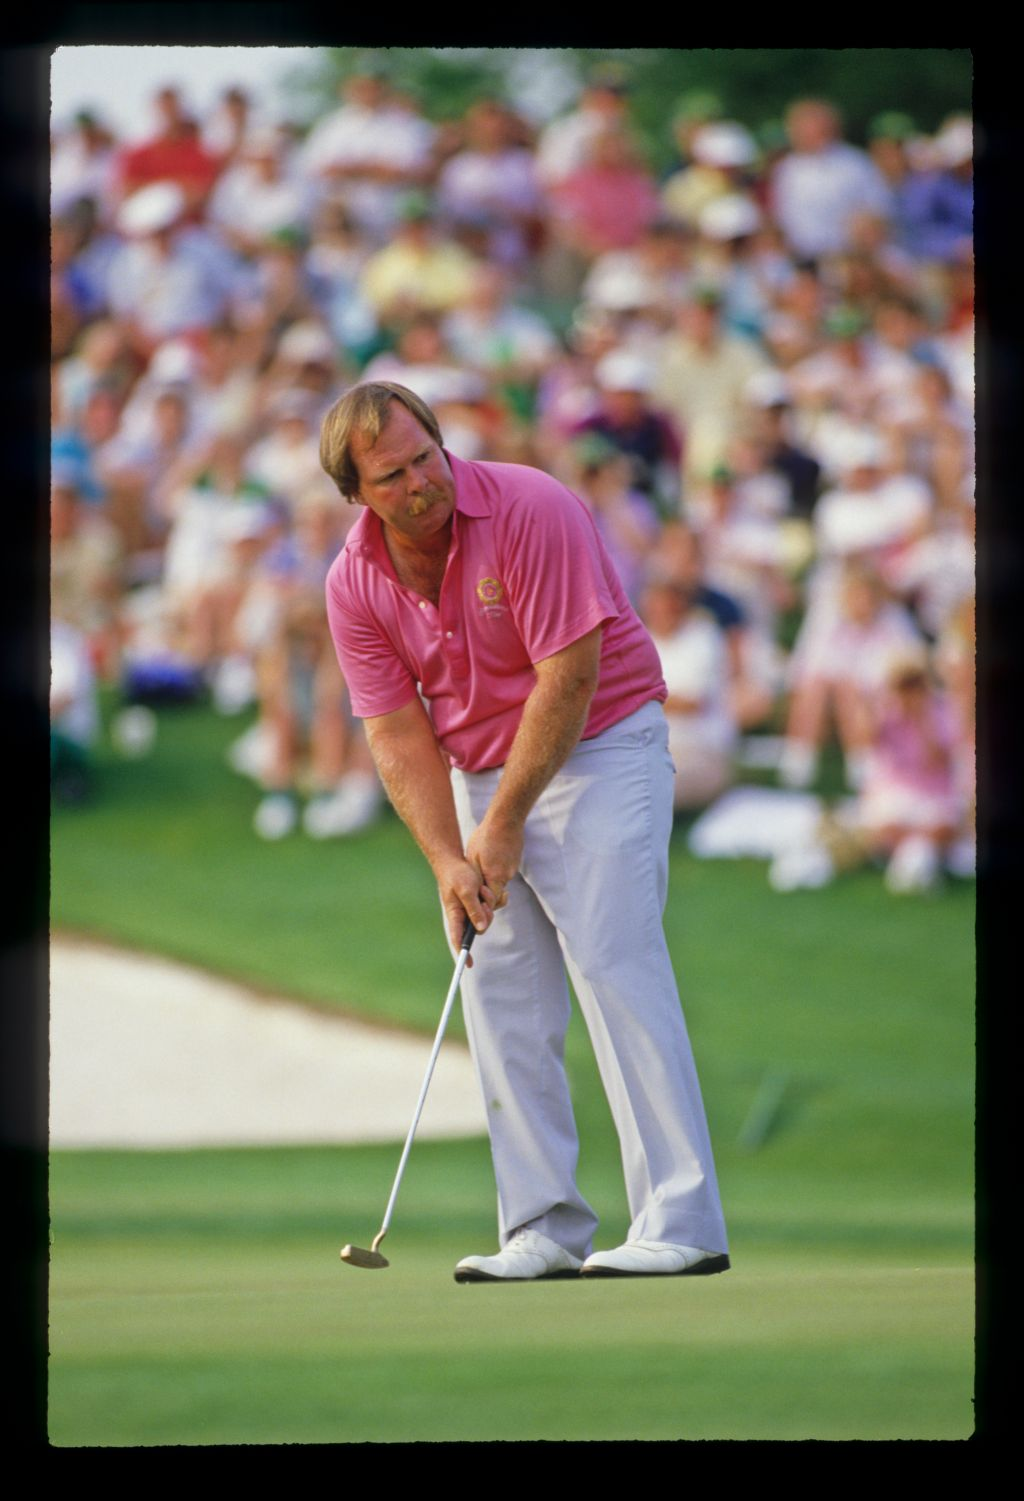 Craig Stadler willing a putt to drop during the 1988 Masters